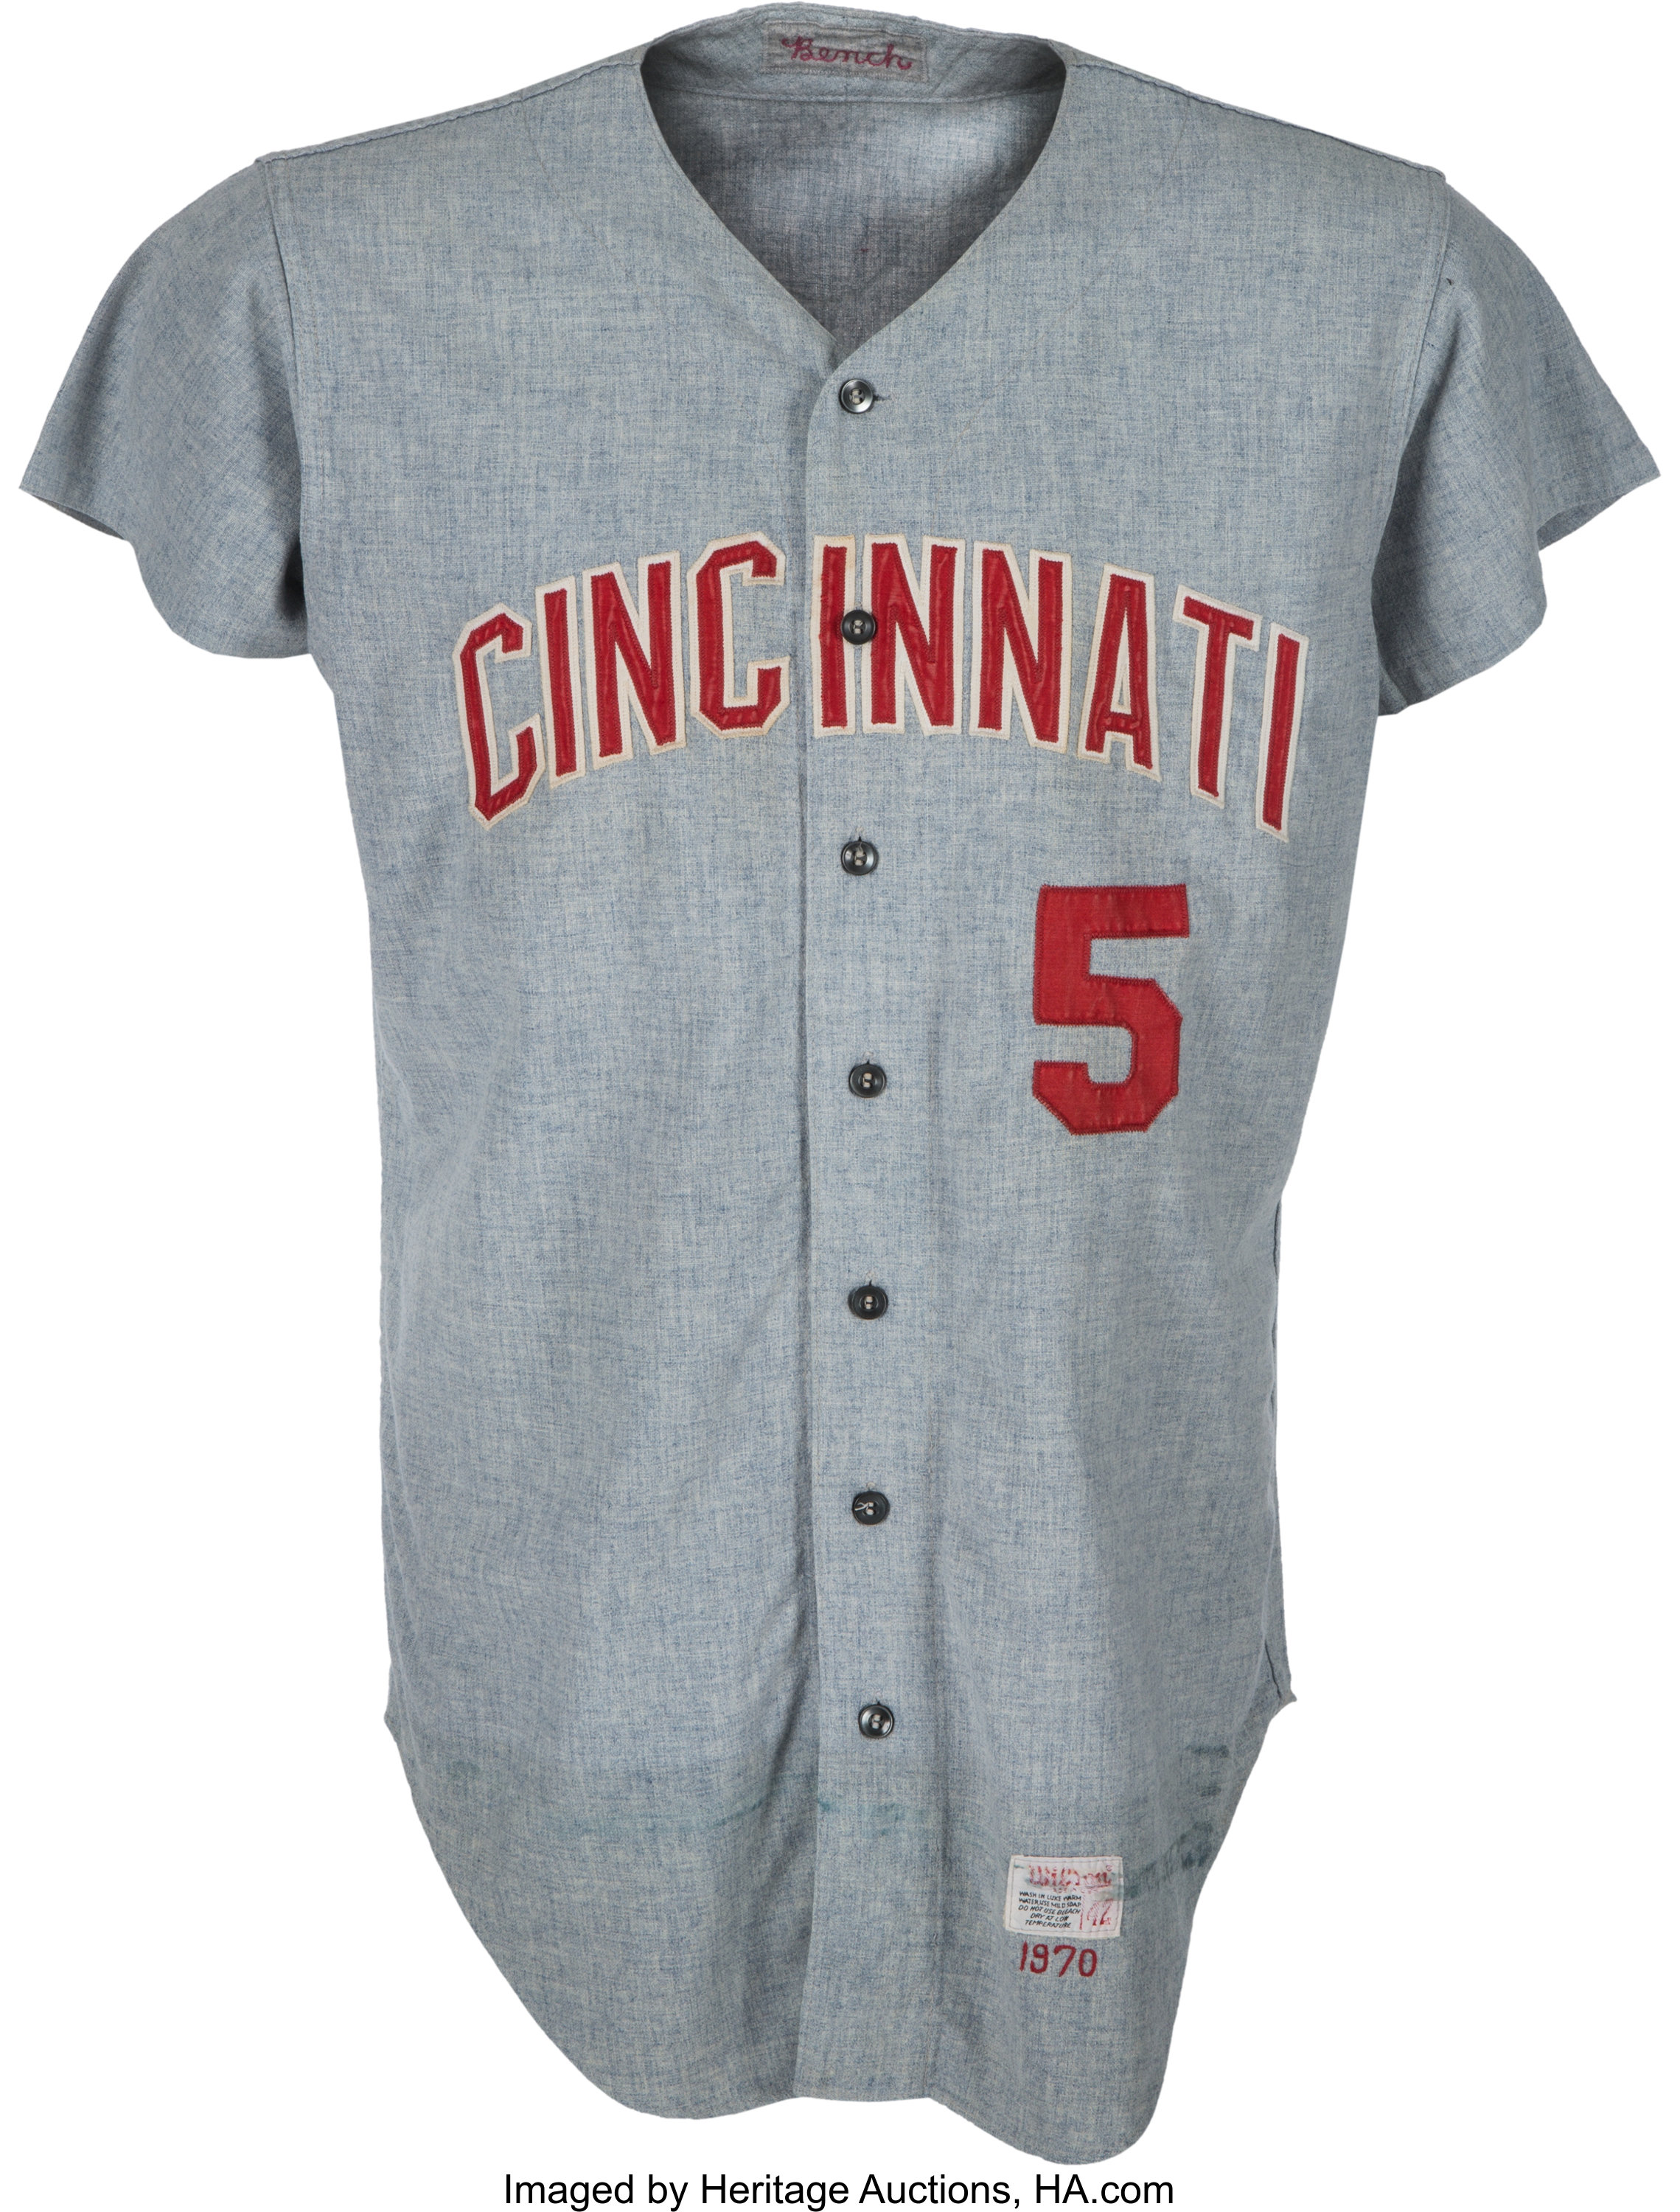 check out 4608a e413c 1970 Johnny Bench Game Worn Cincinnati Reds Jersey, MEARS A9 ...